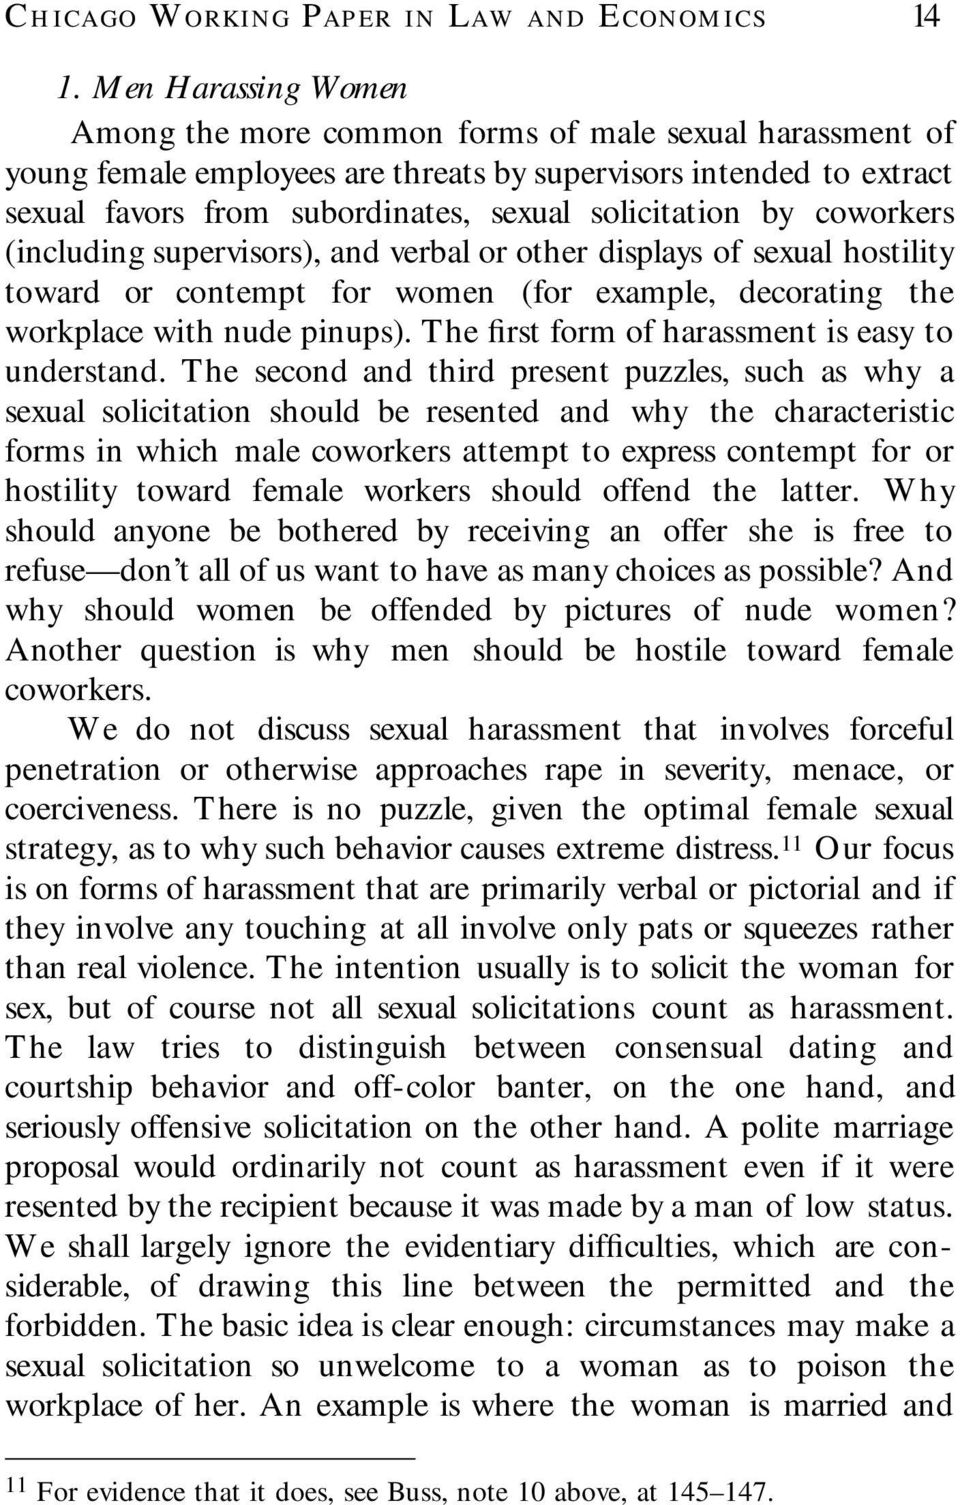 by coworkers (including supervisors), and verbal or other displays of sexual hostility toward or contempt for women (for example, decorating the workplace with nude pinups).